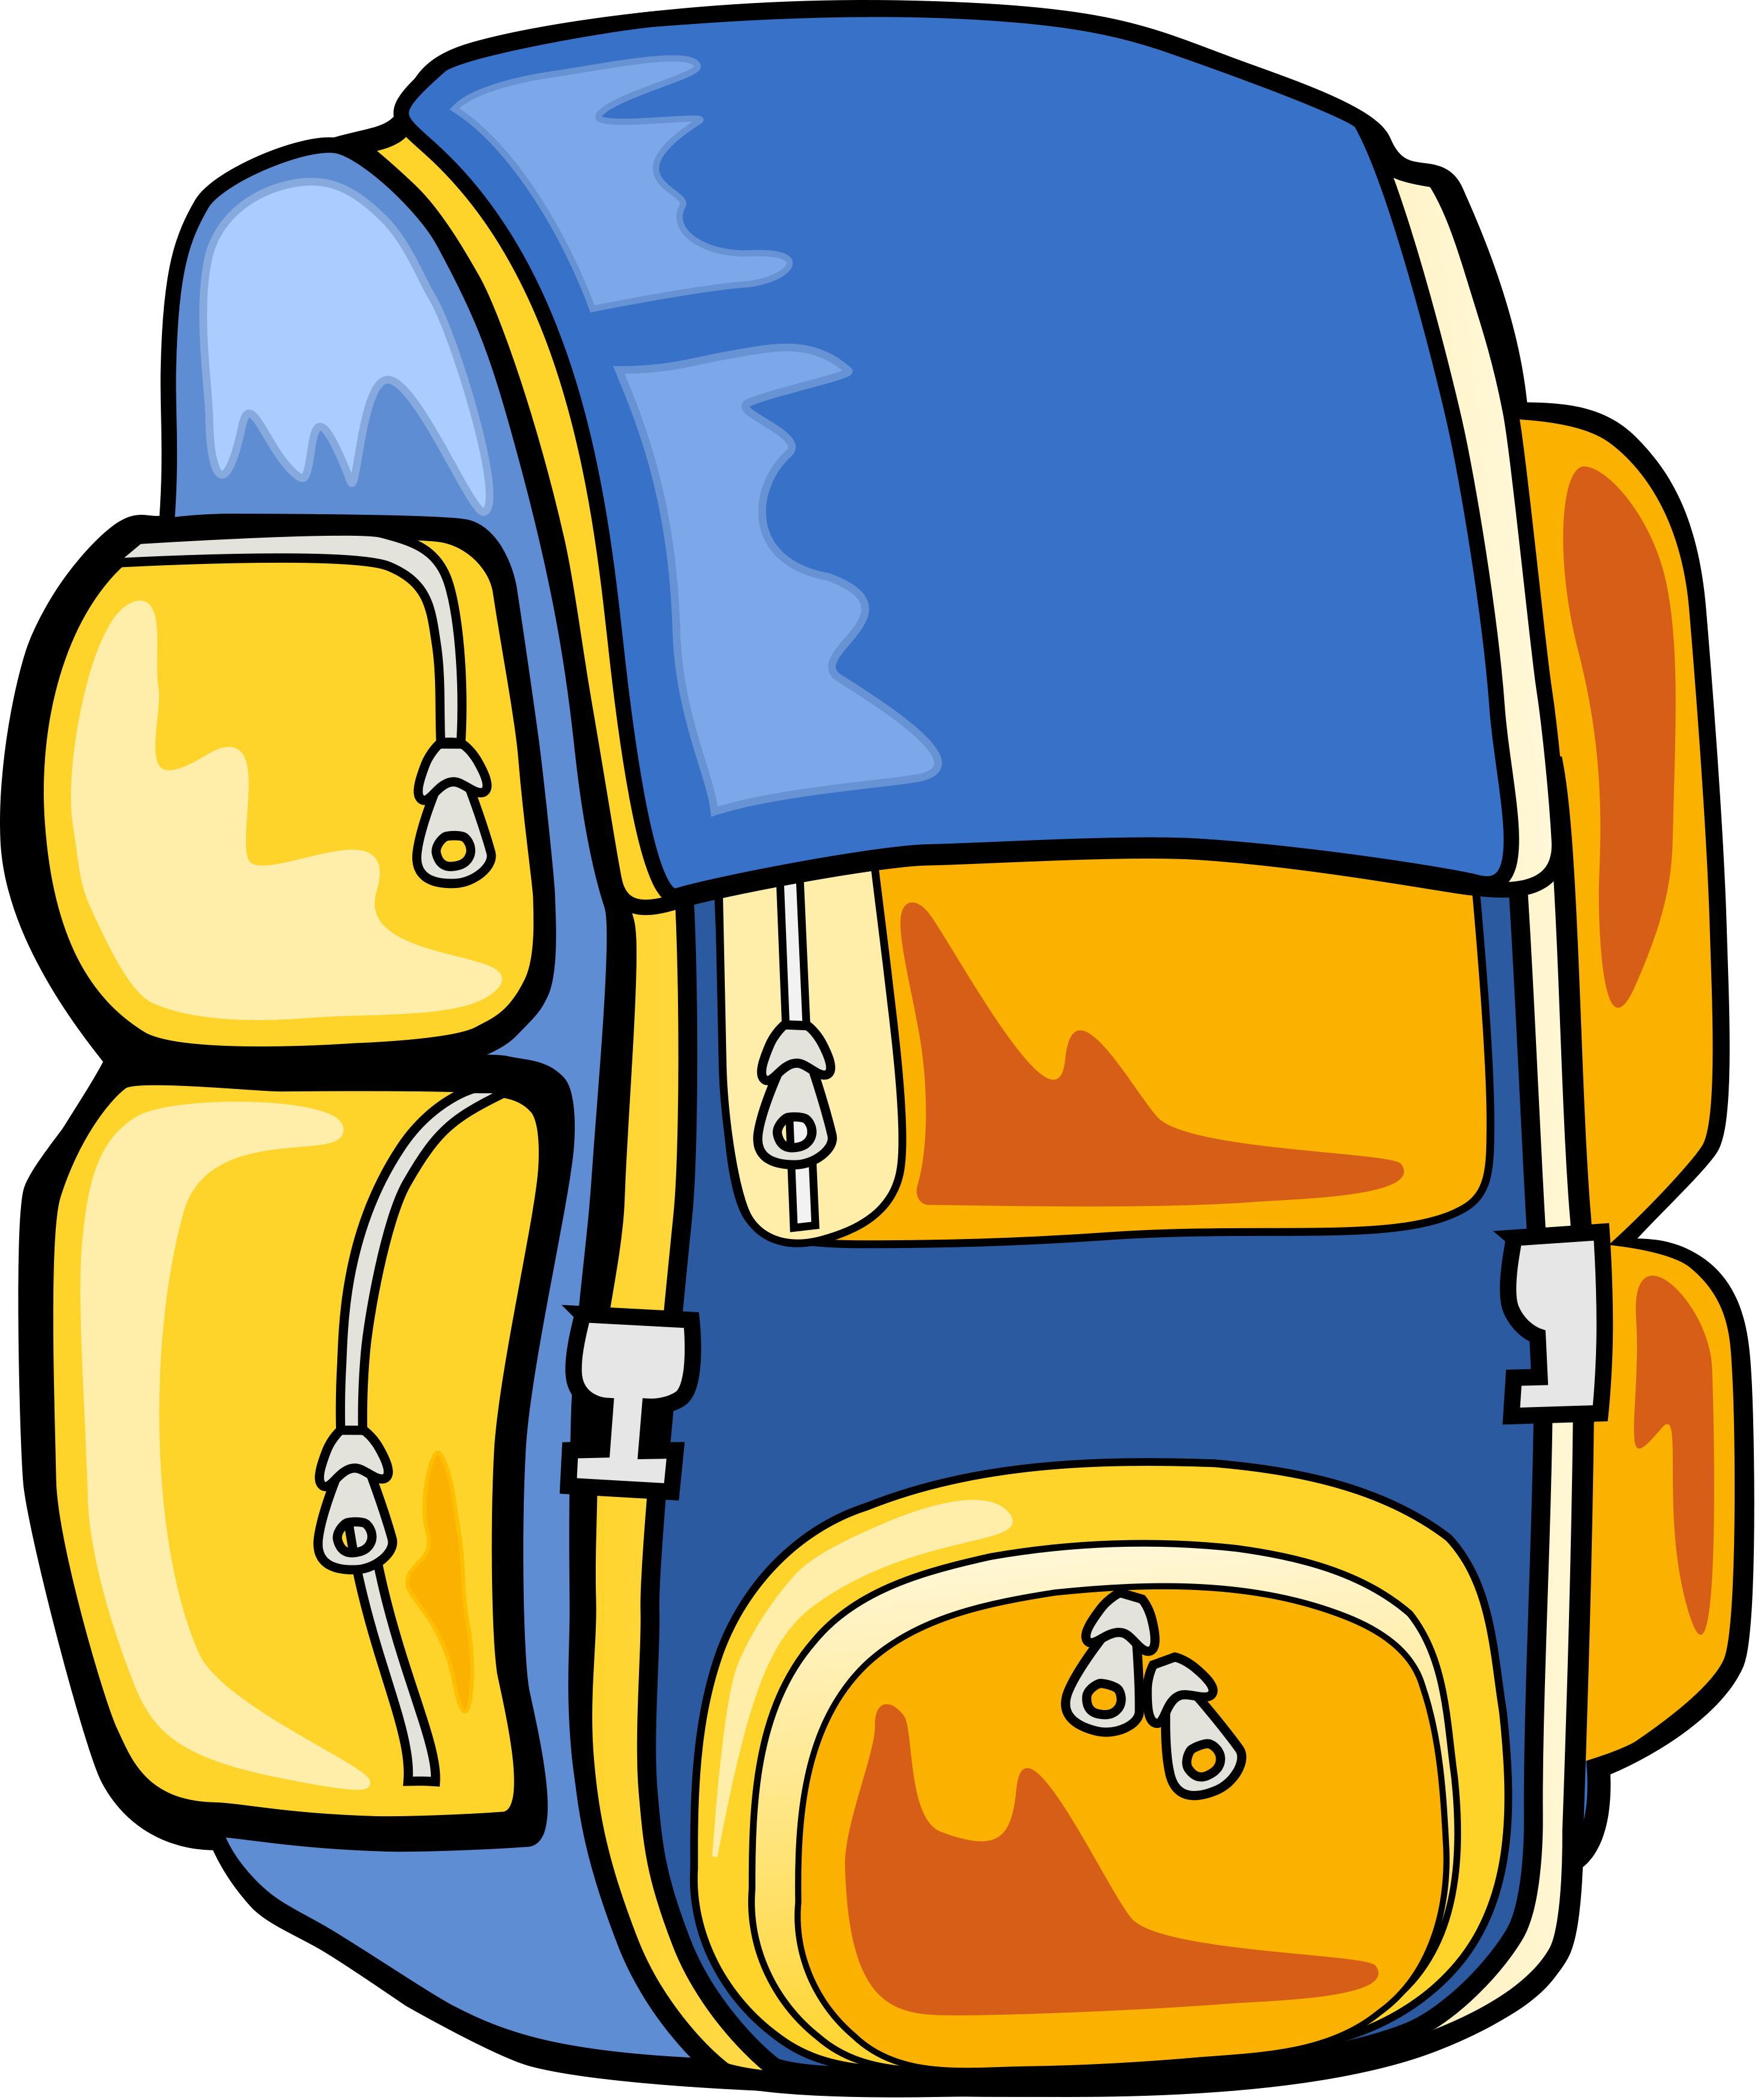 Trip backpackclipartlalolalobackpack. Planning clipart planning preparation